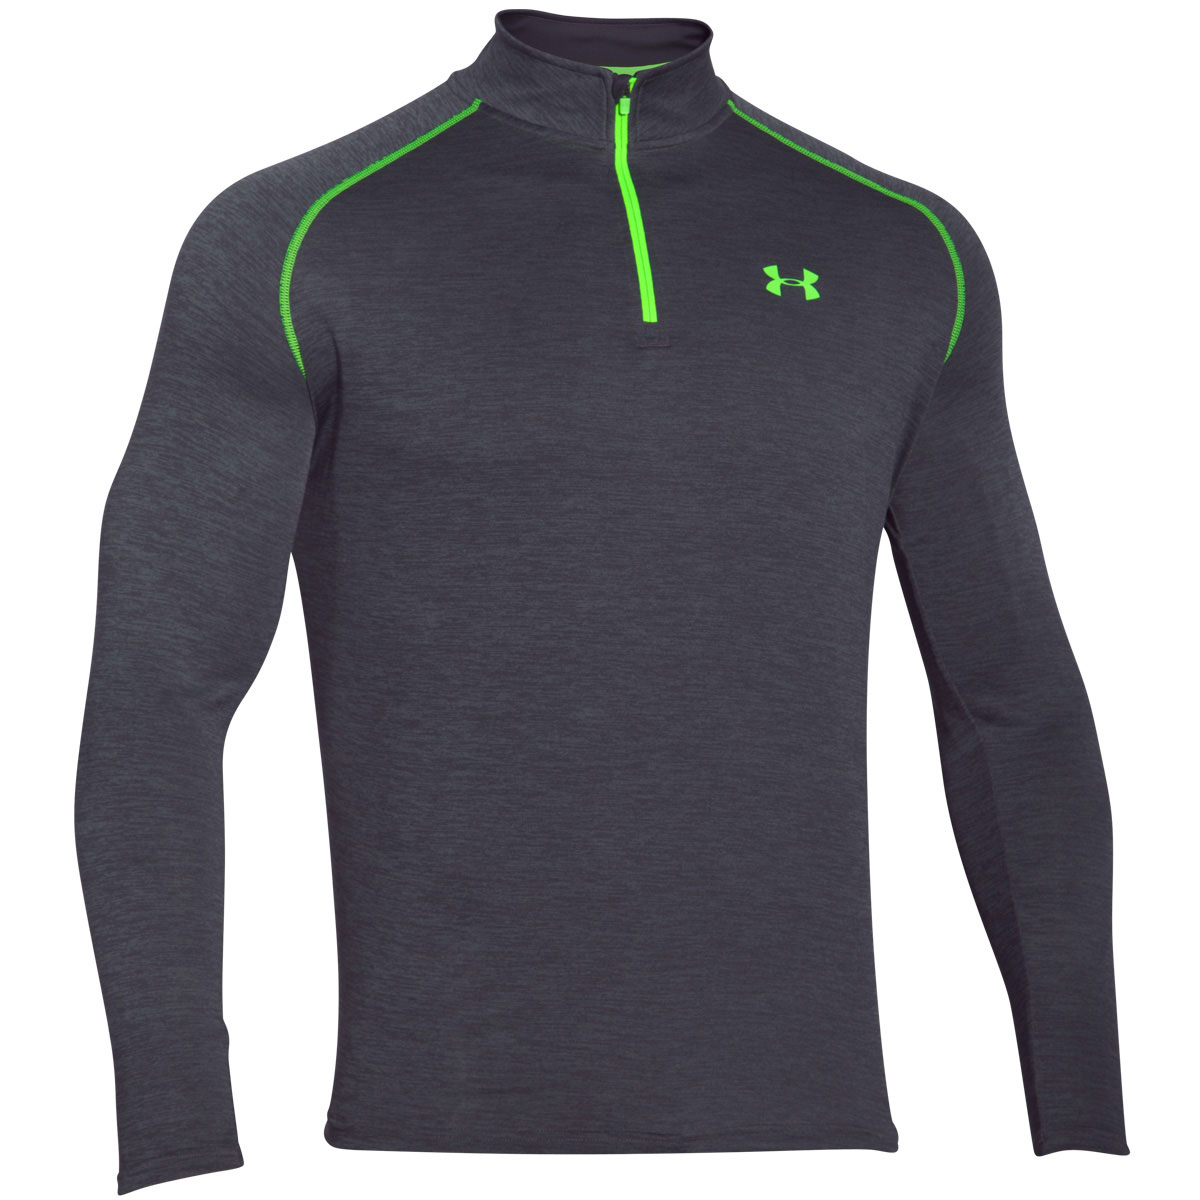 Under-Armour-Mens-UA-Tech-1-4-Zip-Long-Sleeve-Top-Workout-Layer-27-OFF-RRP thumbnail 79